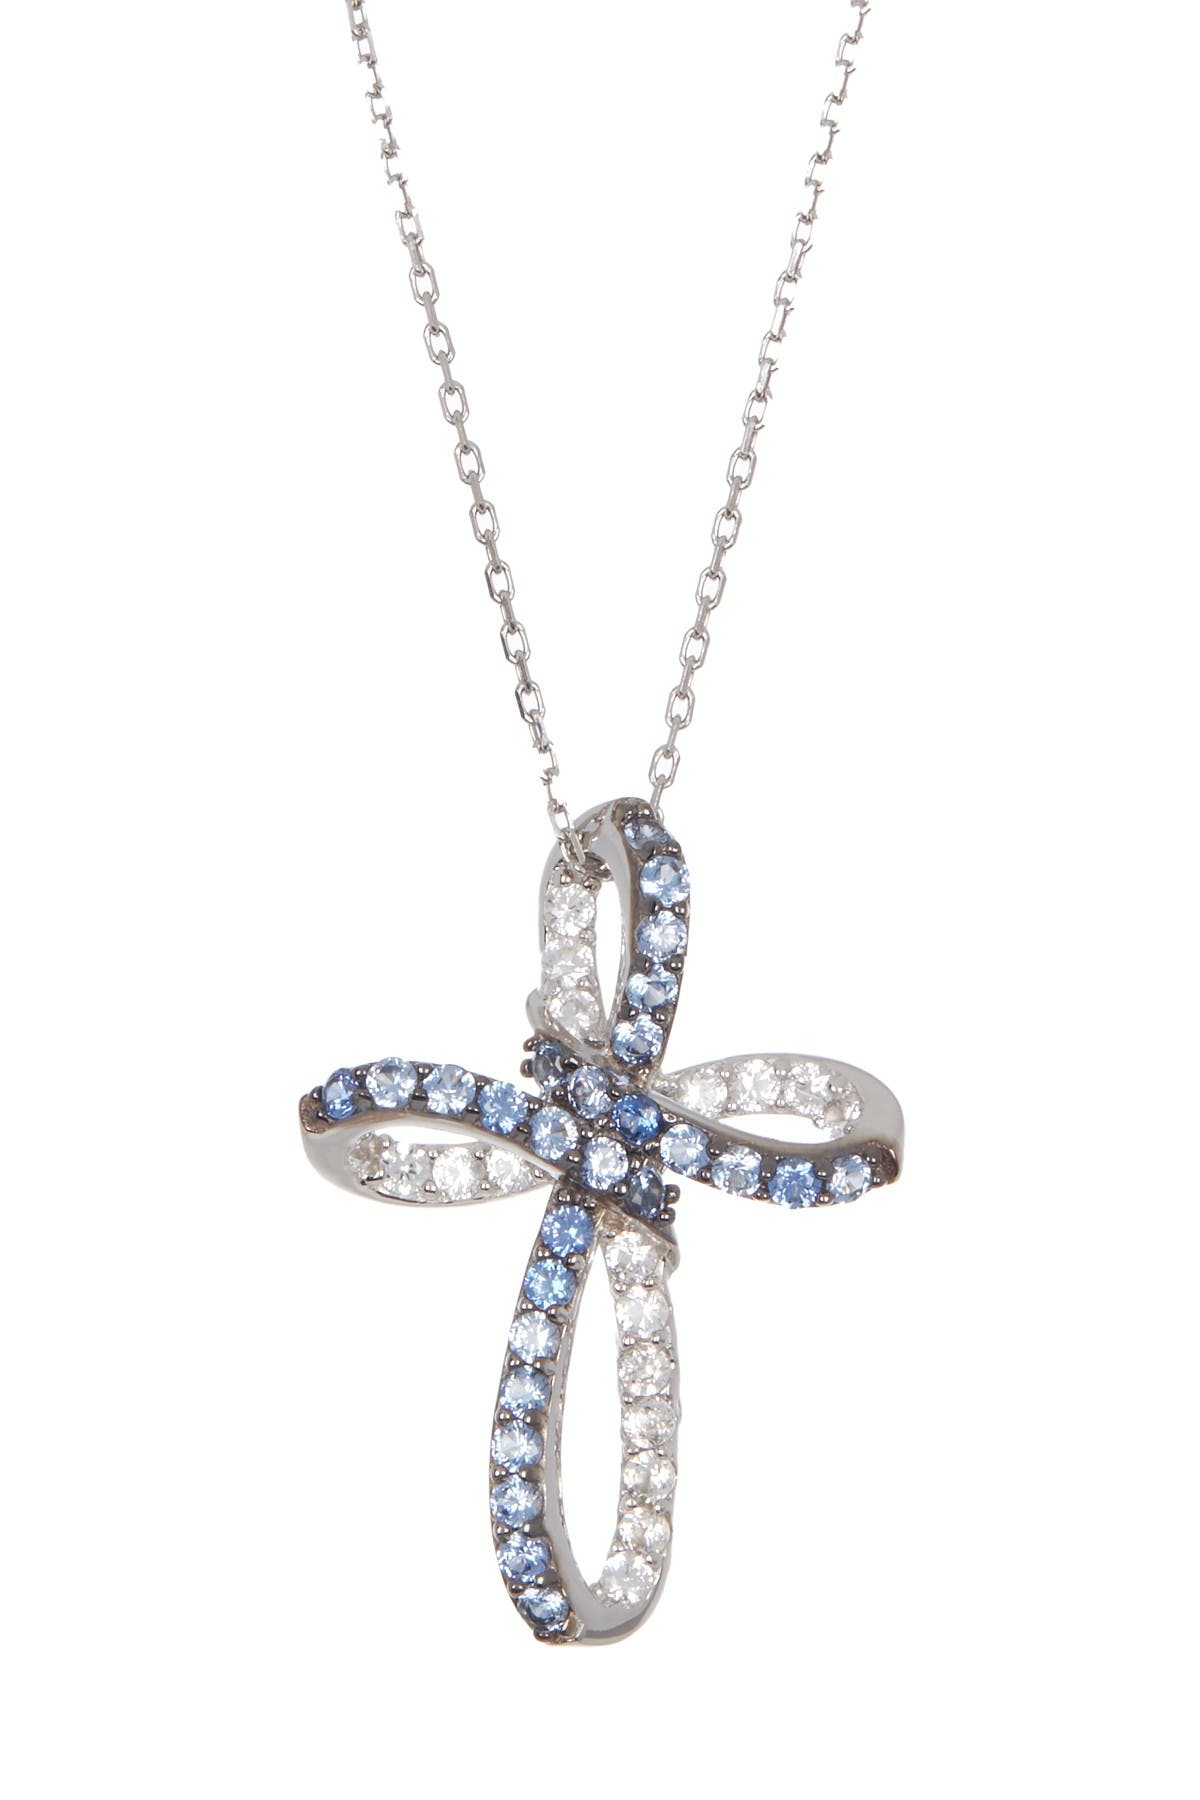 Image of Suzy Levian Sterling Silver Blue Sapphire Cross Pendant Necklace